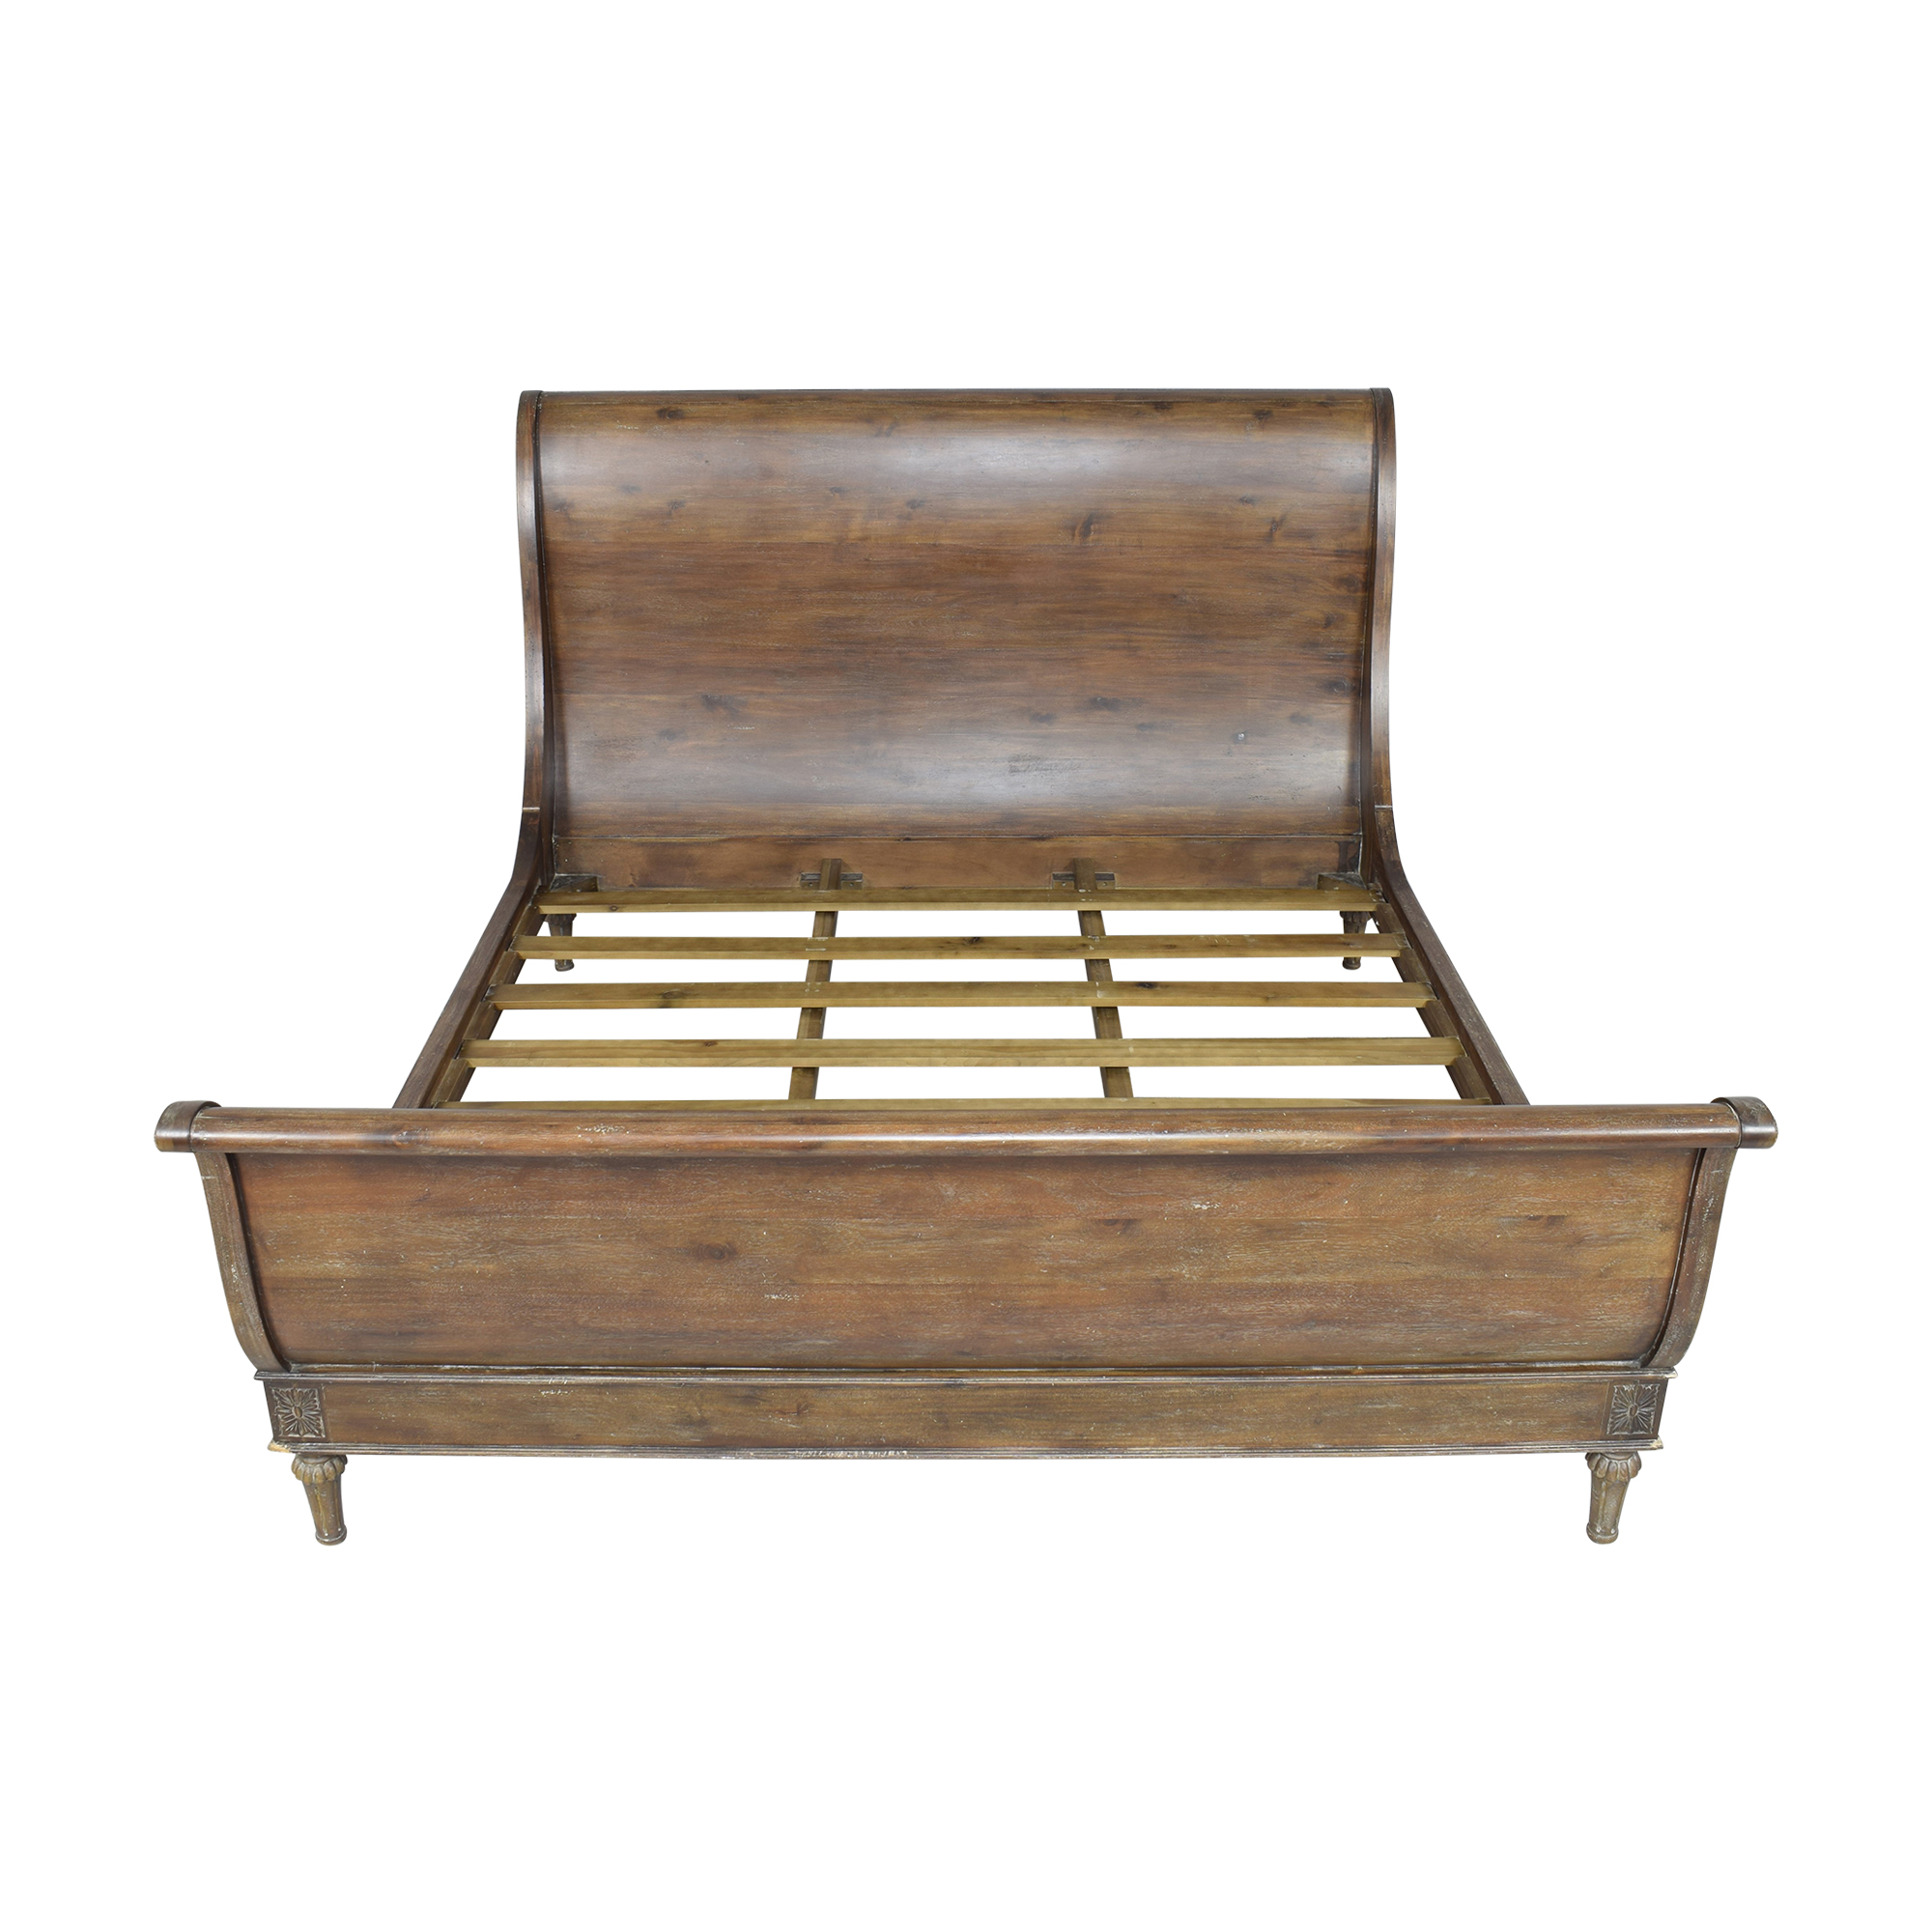 Restoration Hardware Restoration Hardware Empire Rosette King Sleigh Bed with Footboard used